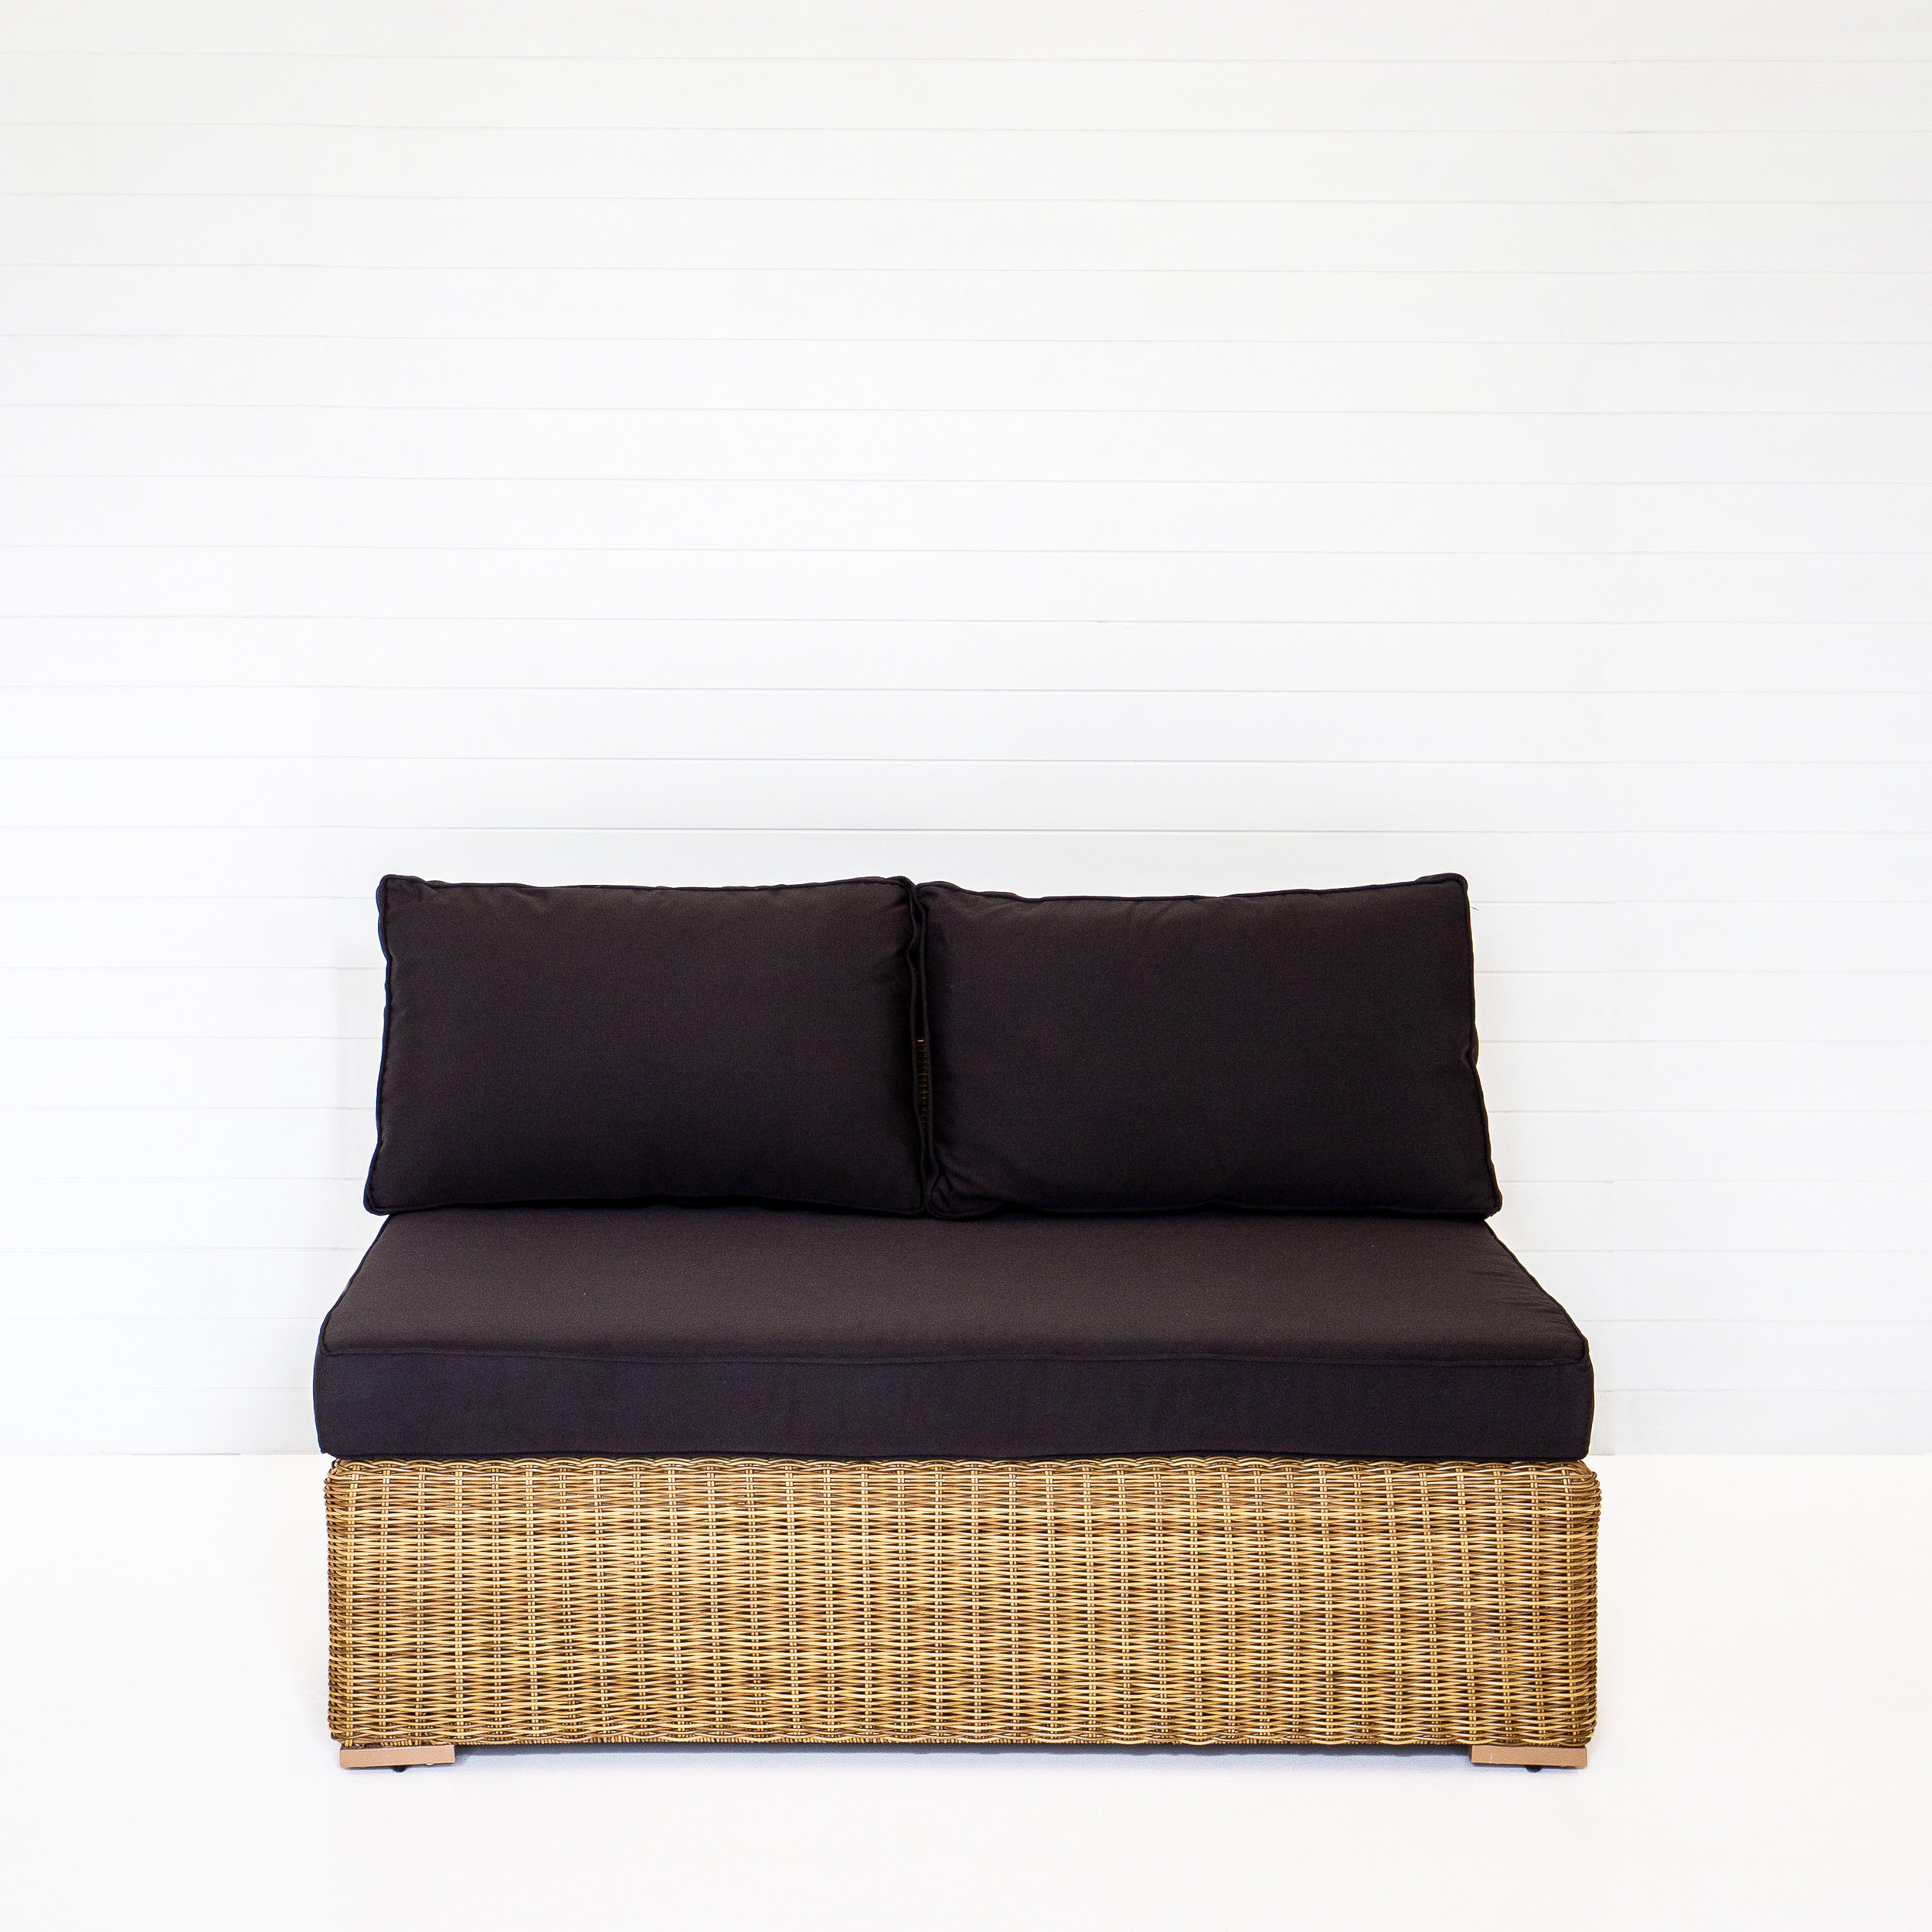 DUNE TWO SEATER MODULAR SOFA (NO ARMS) WITH BLACK CUSHIONS